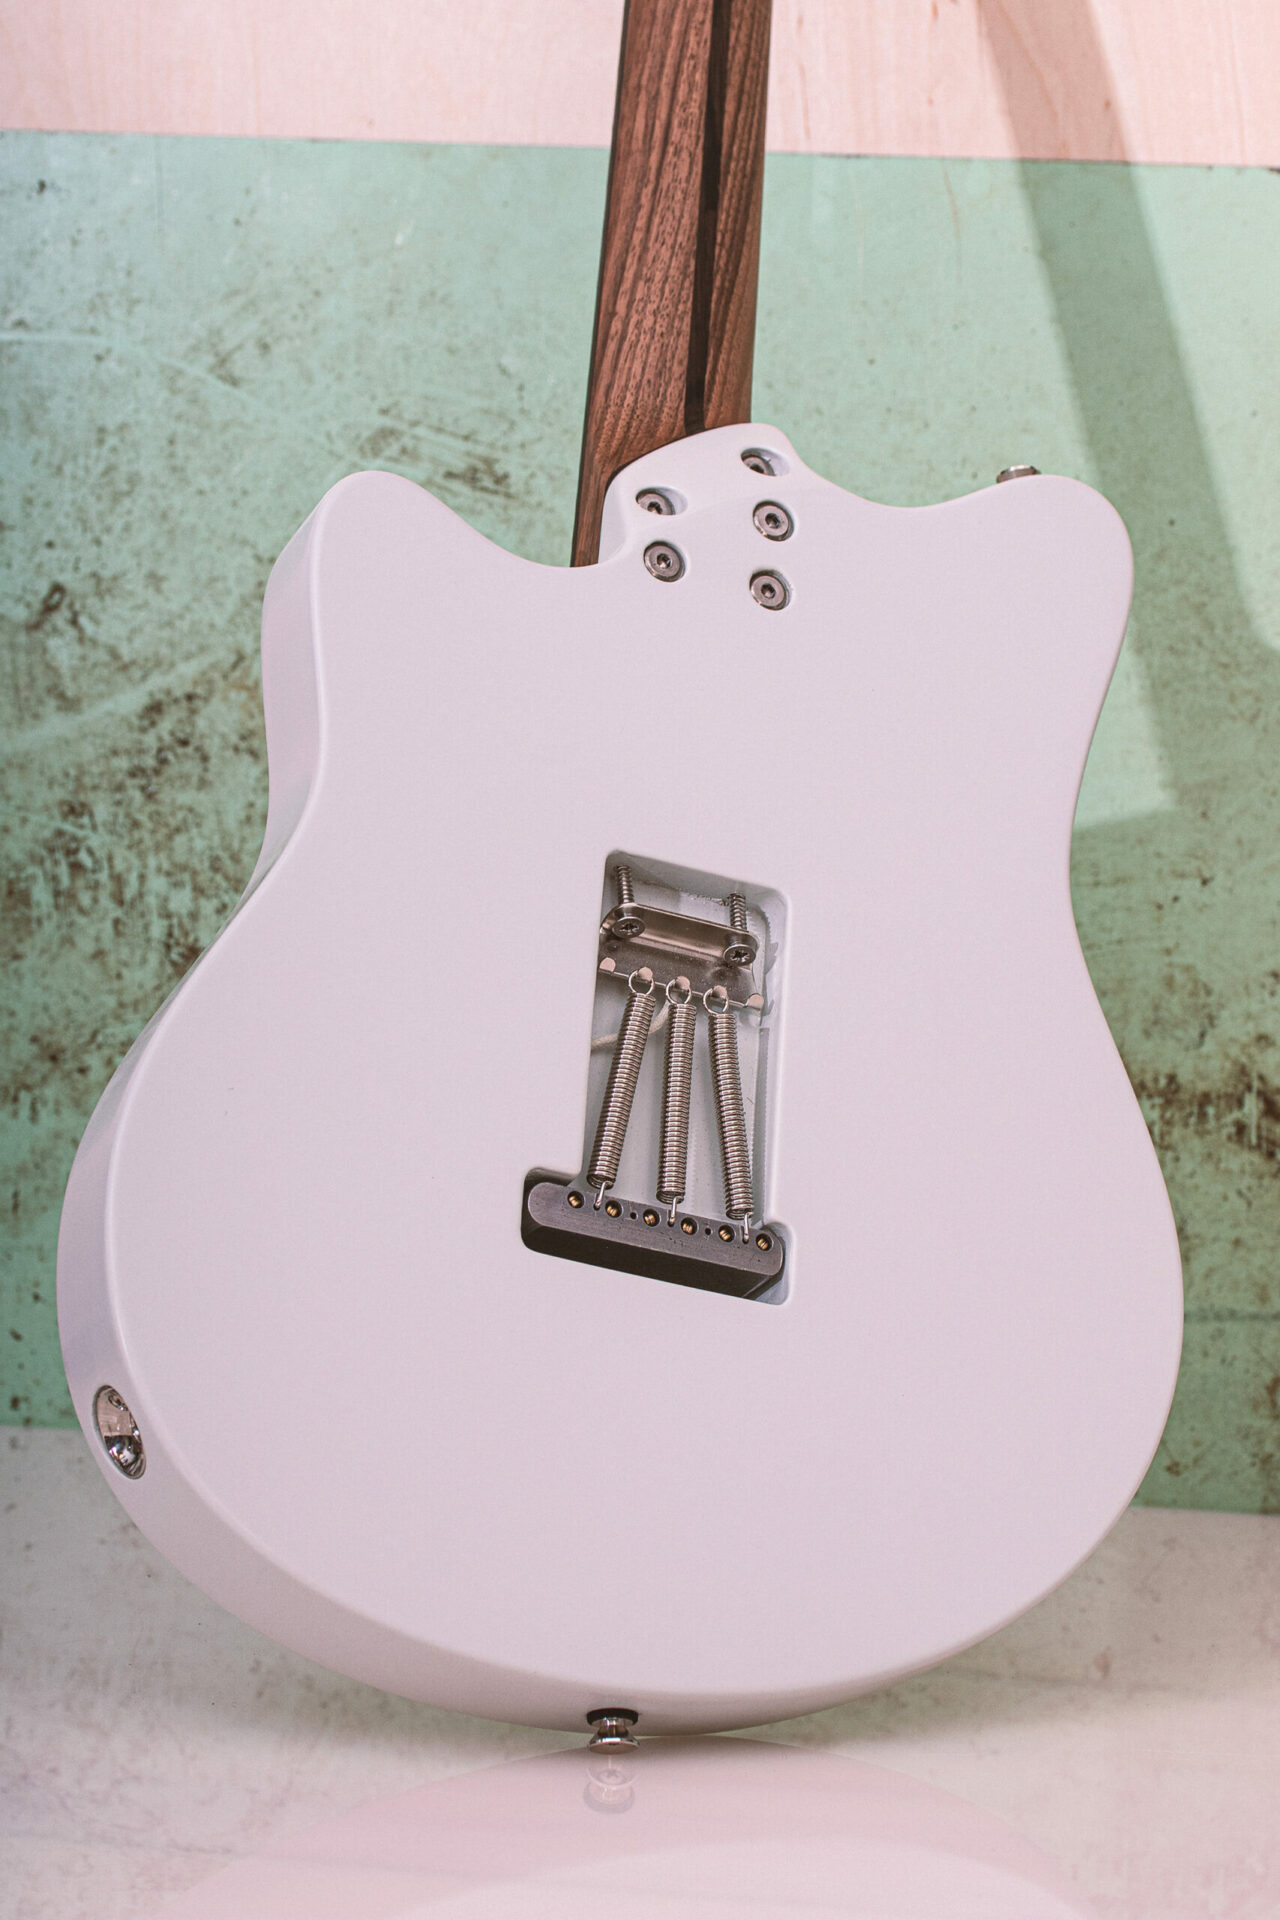 On Guitars - Star Grey White 3S - Back, tremolo mechanics and and 5-point neck attachment